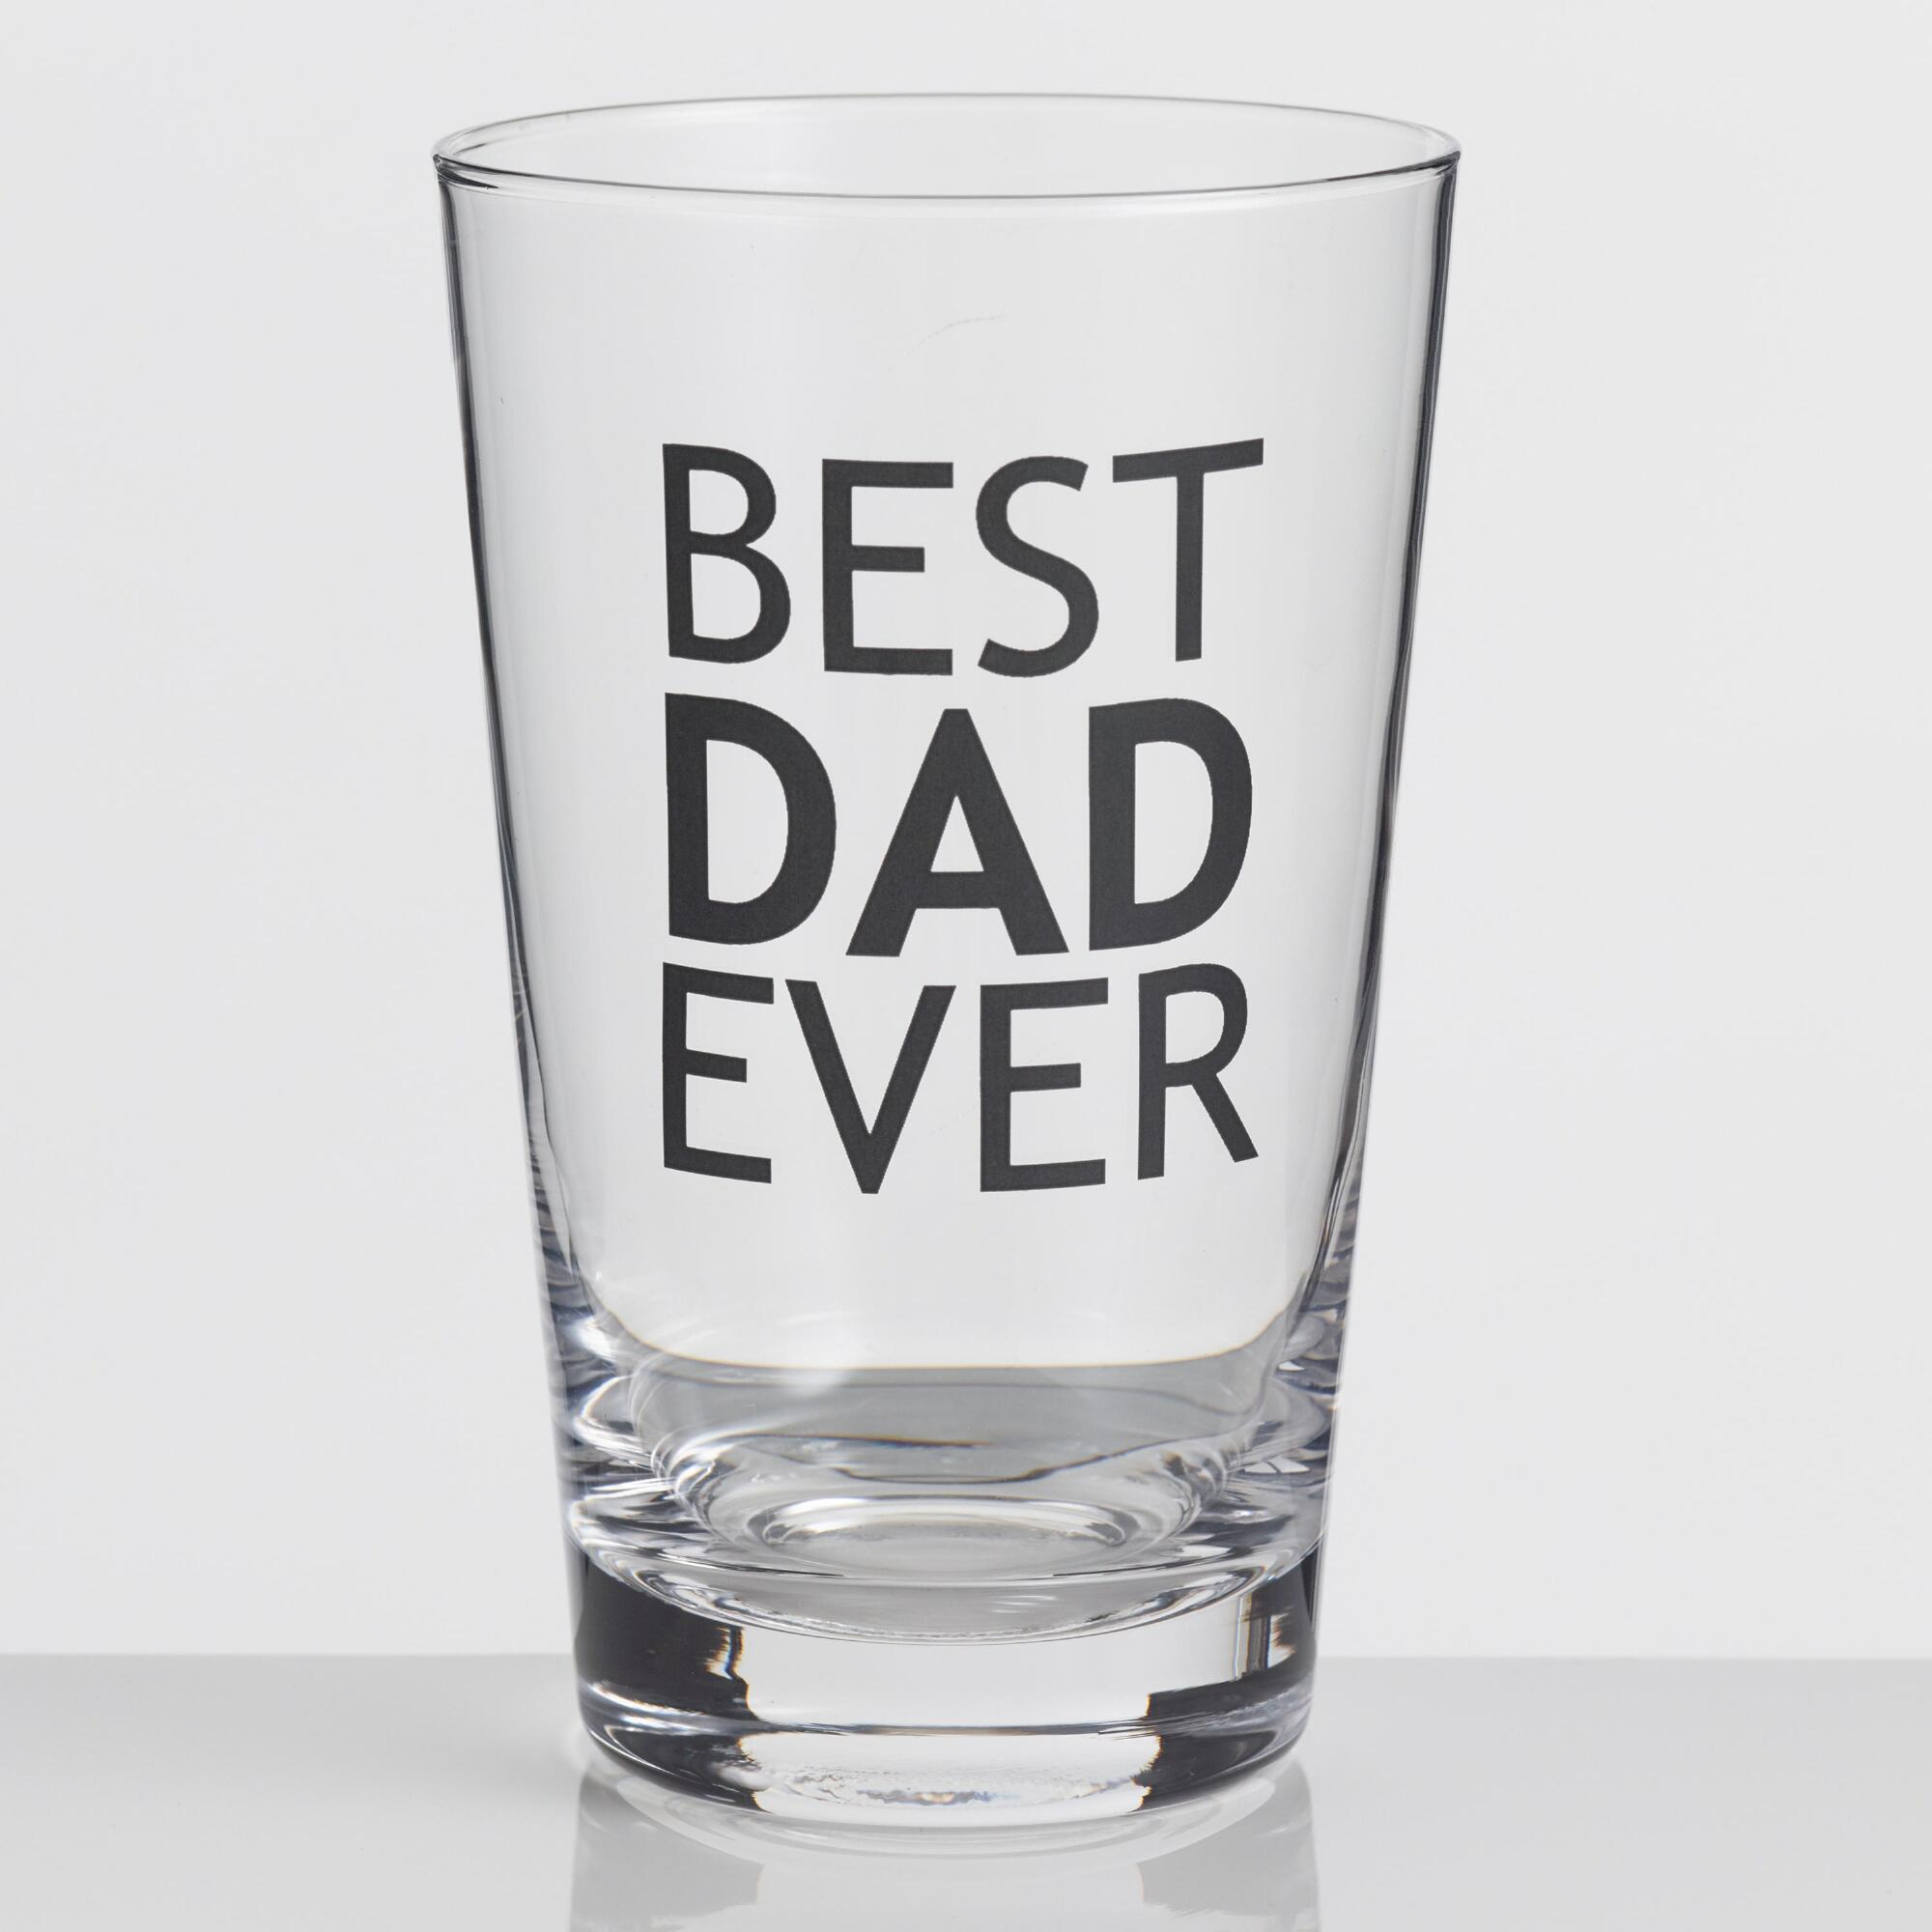 Best Dad Ever Pint Glass by World Market